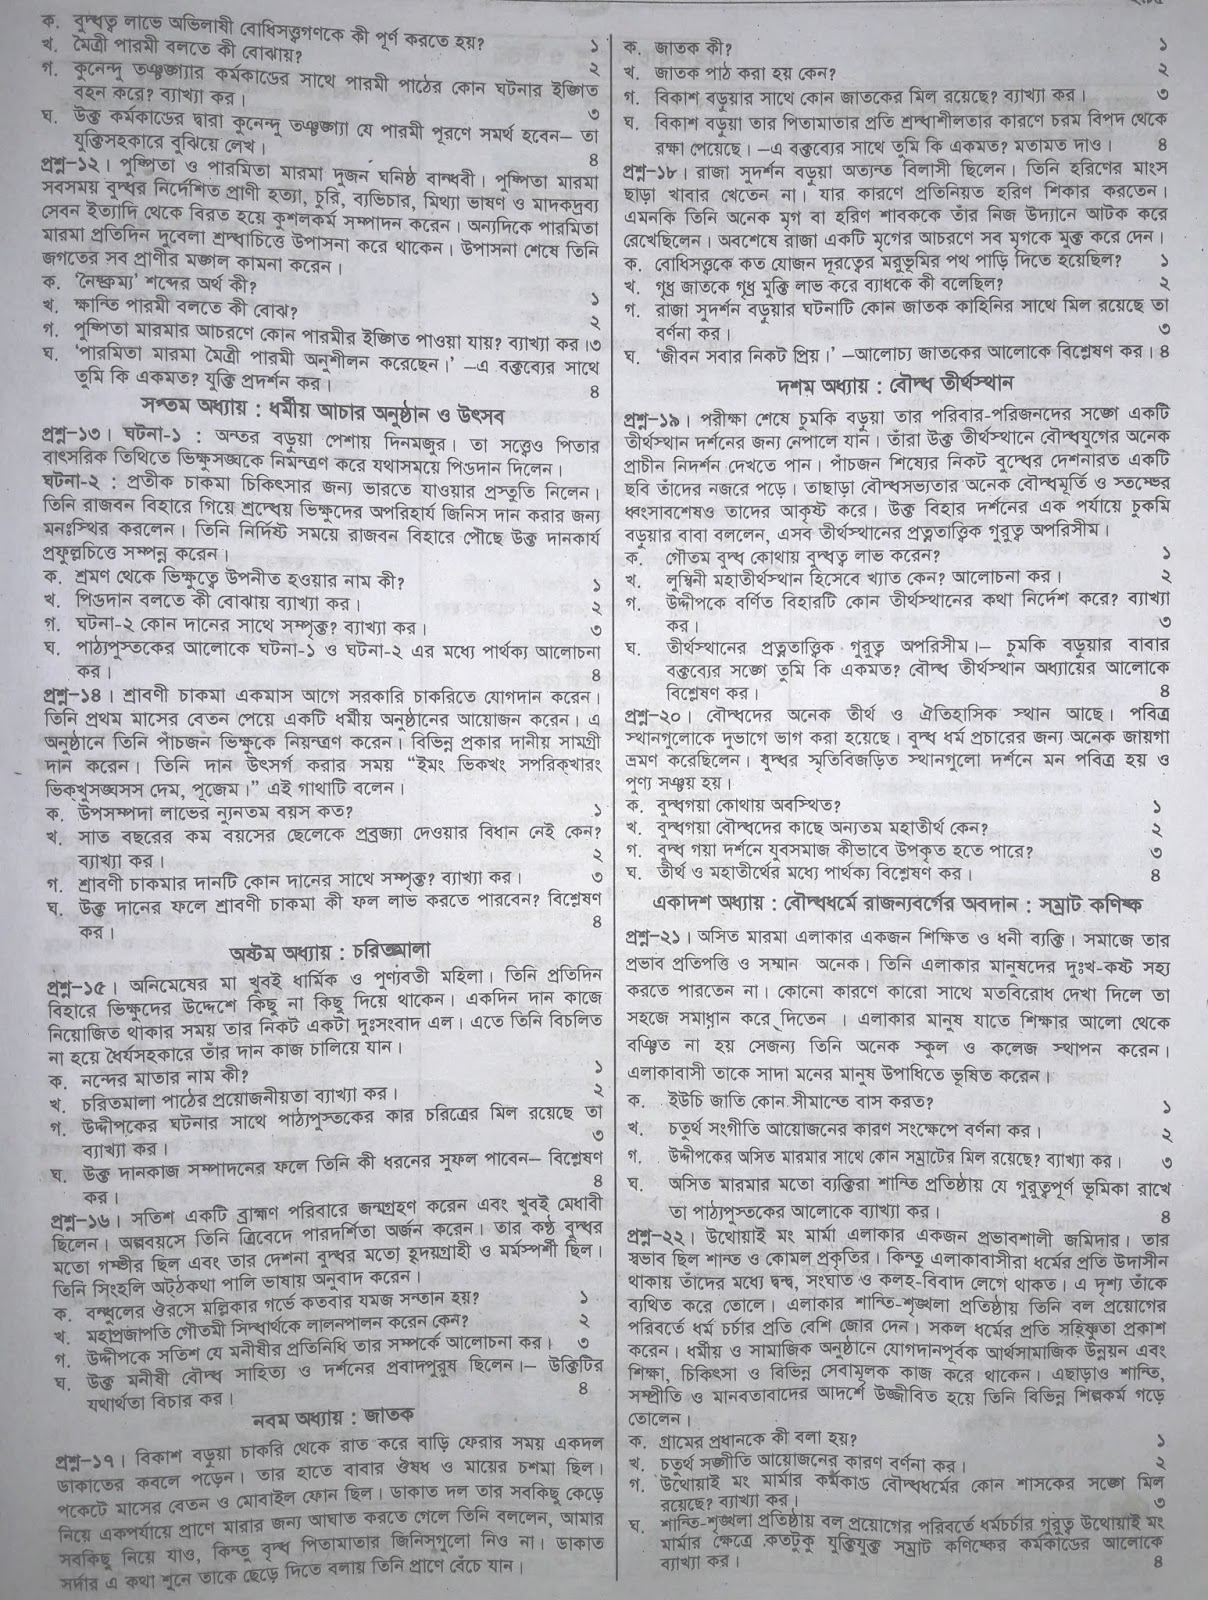 jsc Buddhist Religion & Moral Education suggestion, exam question paper, model question, mcq question, question pattern, preparation for dhaka board, all boards